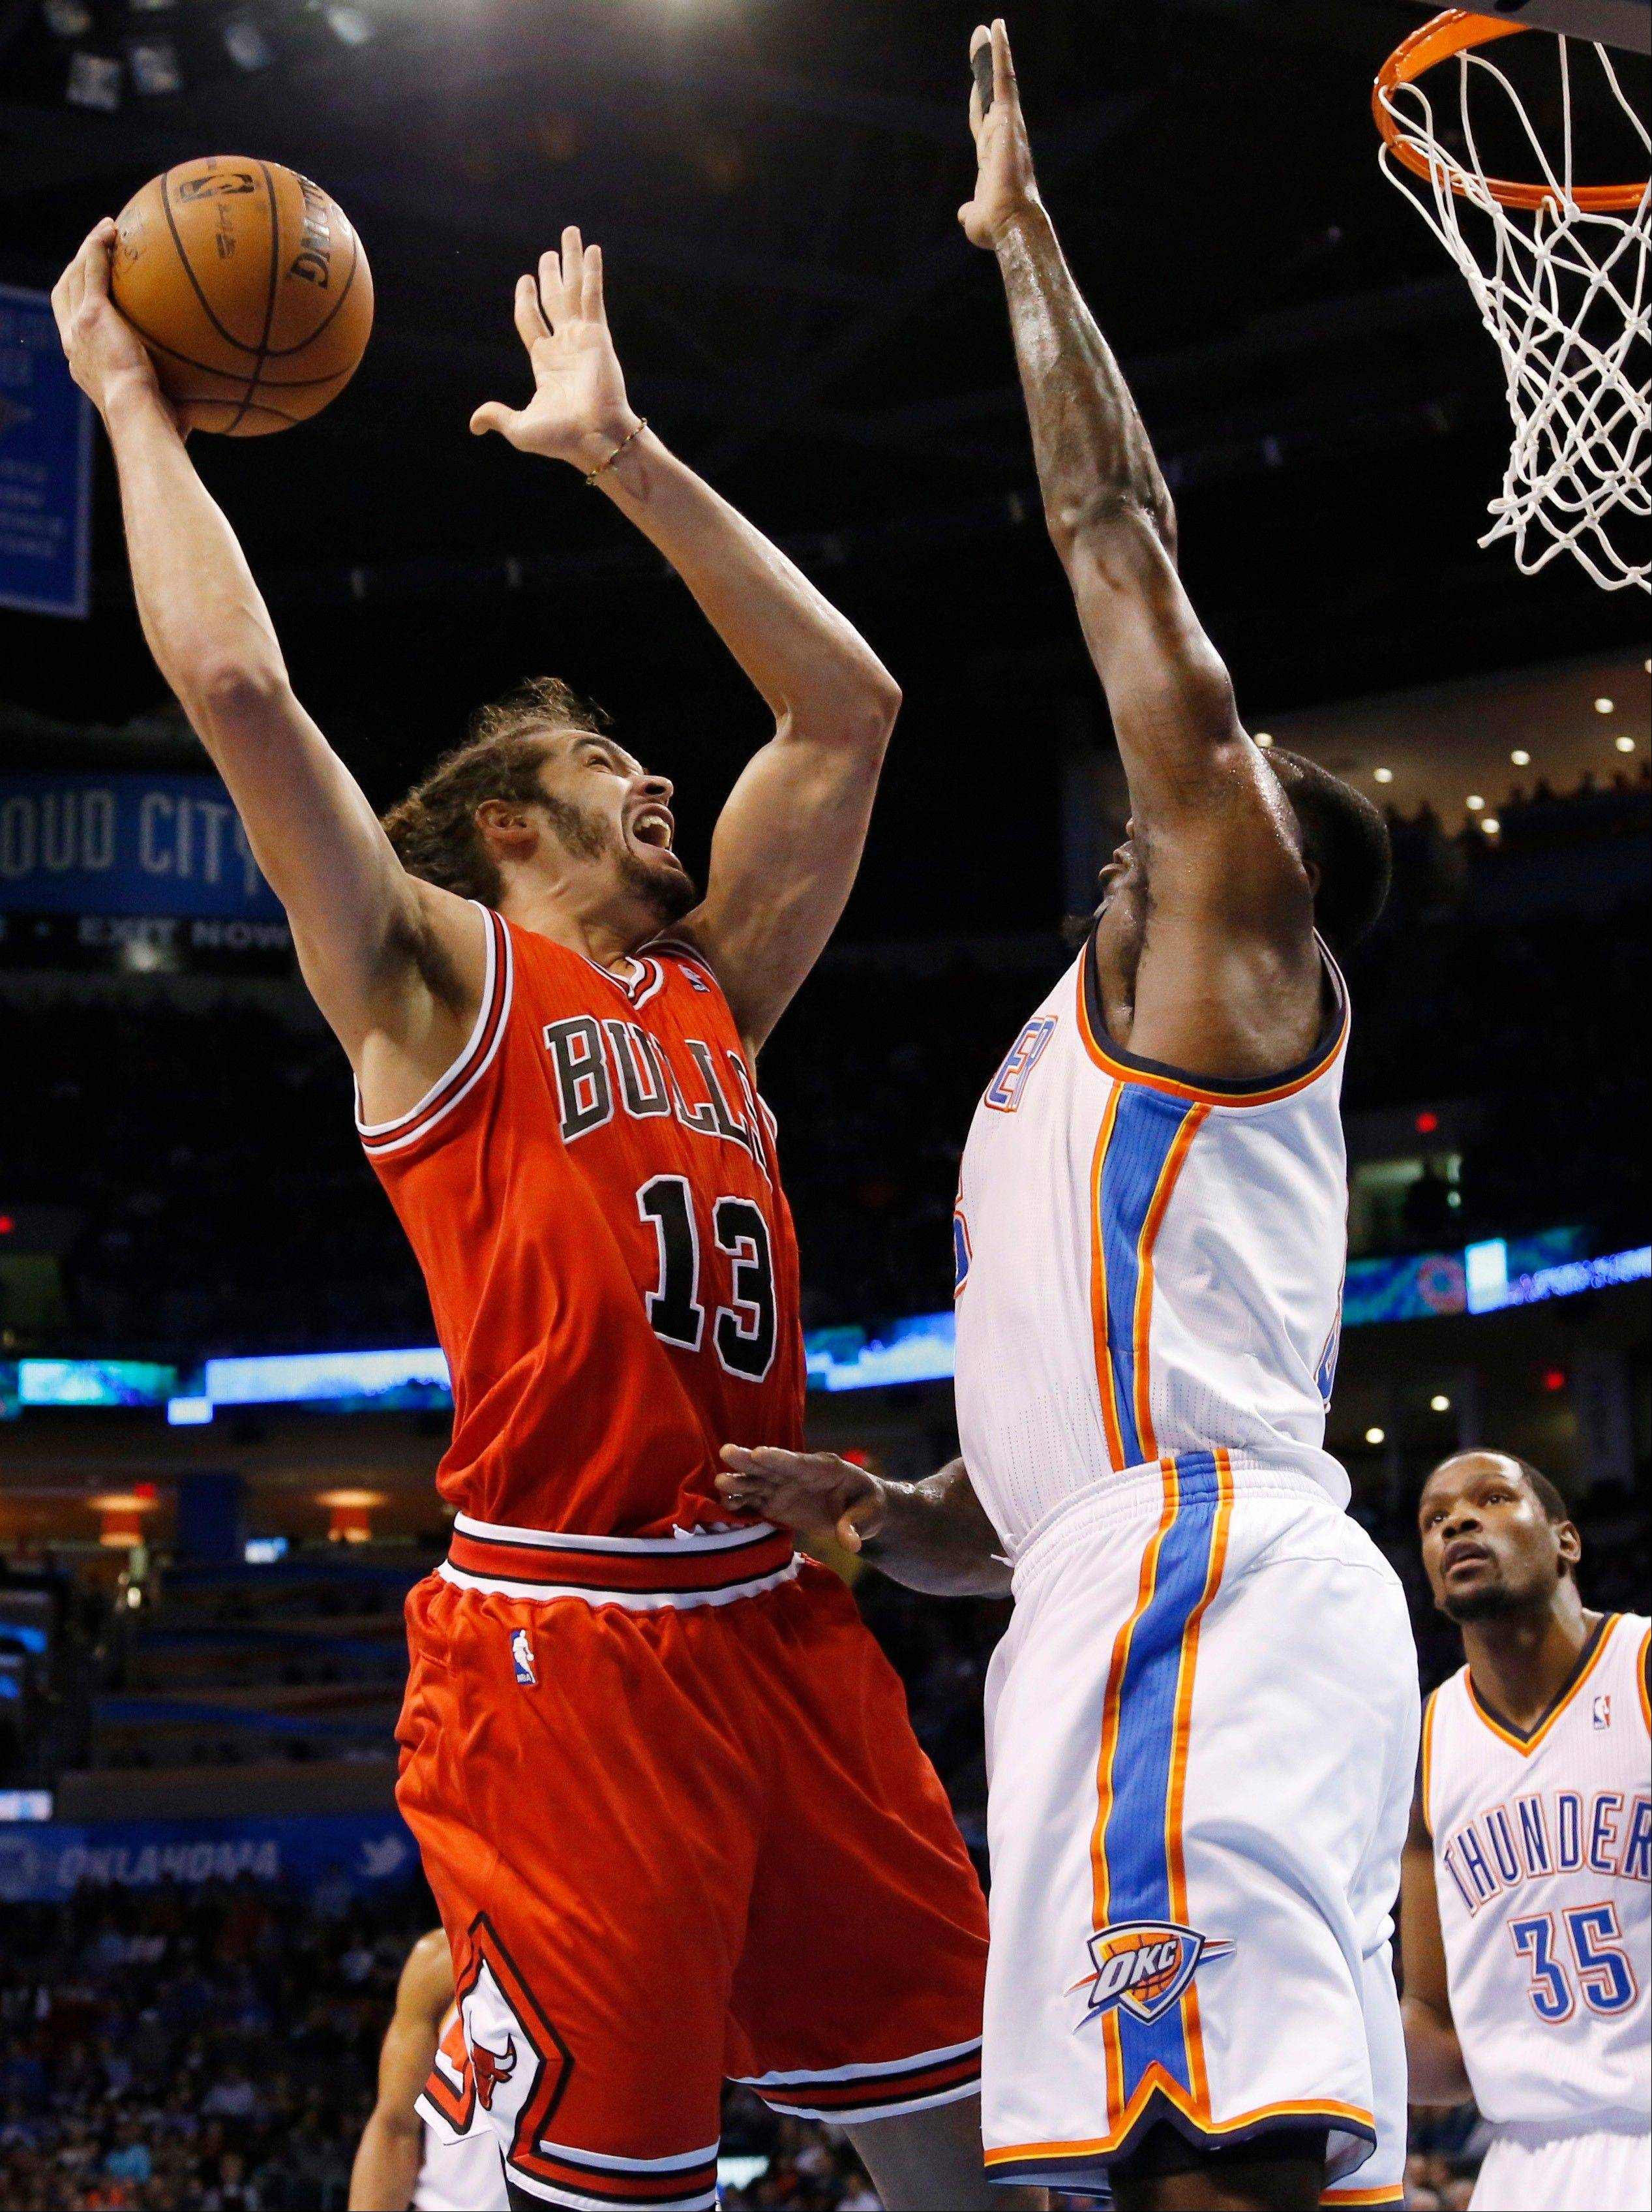 The Bulls� Joakim Noah is guarded by the Thunder�s Kendrick on Thursday. After the game, Noah was visiting tormer teammate Thabo Sefolosha in the Thunder locker room when Perkins complained loudly about Noah�s presence.